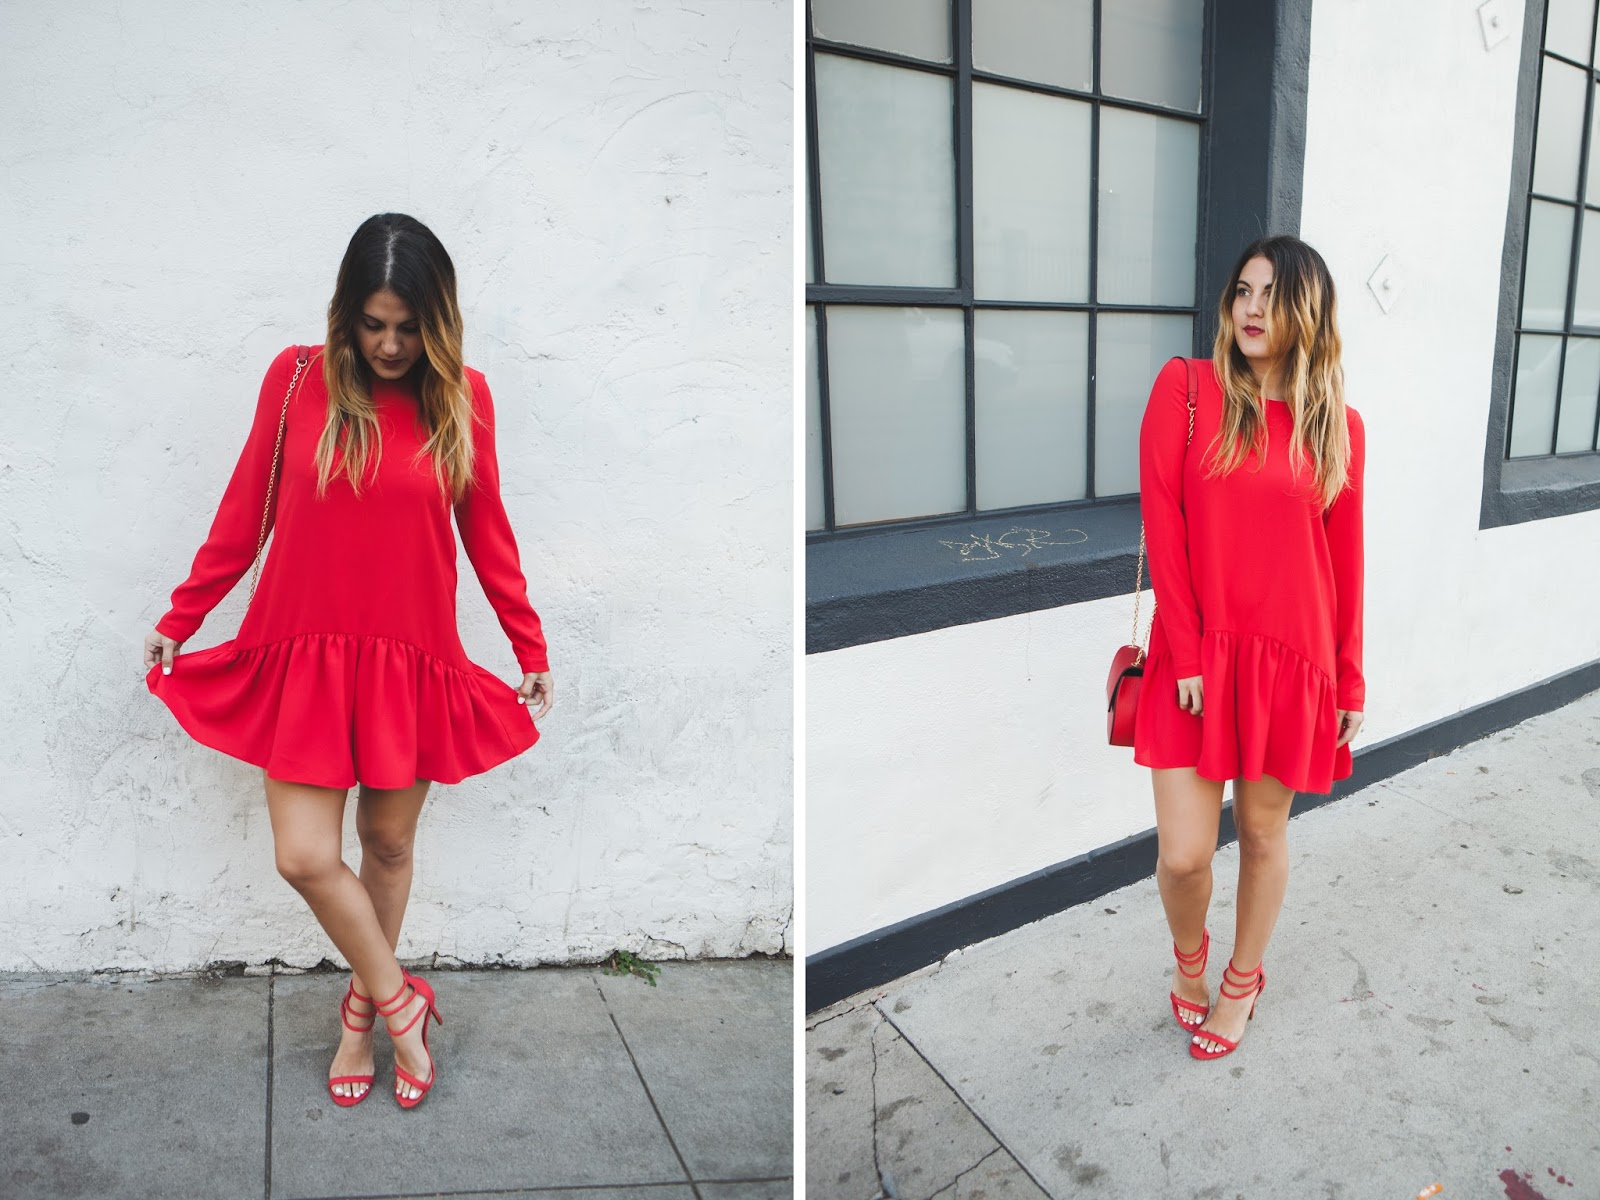 LA Fashion Blogger -- Taylor Winkelmeyer